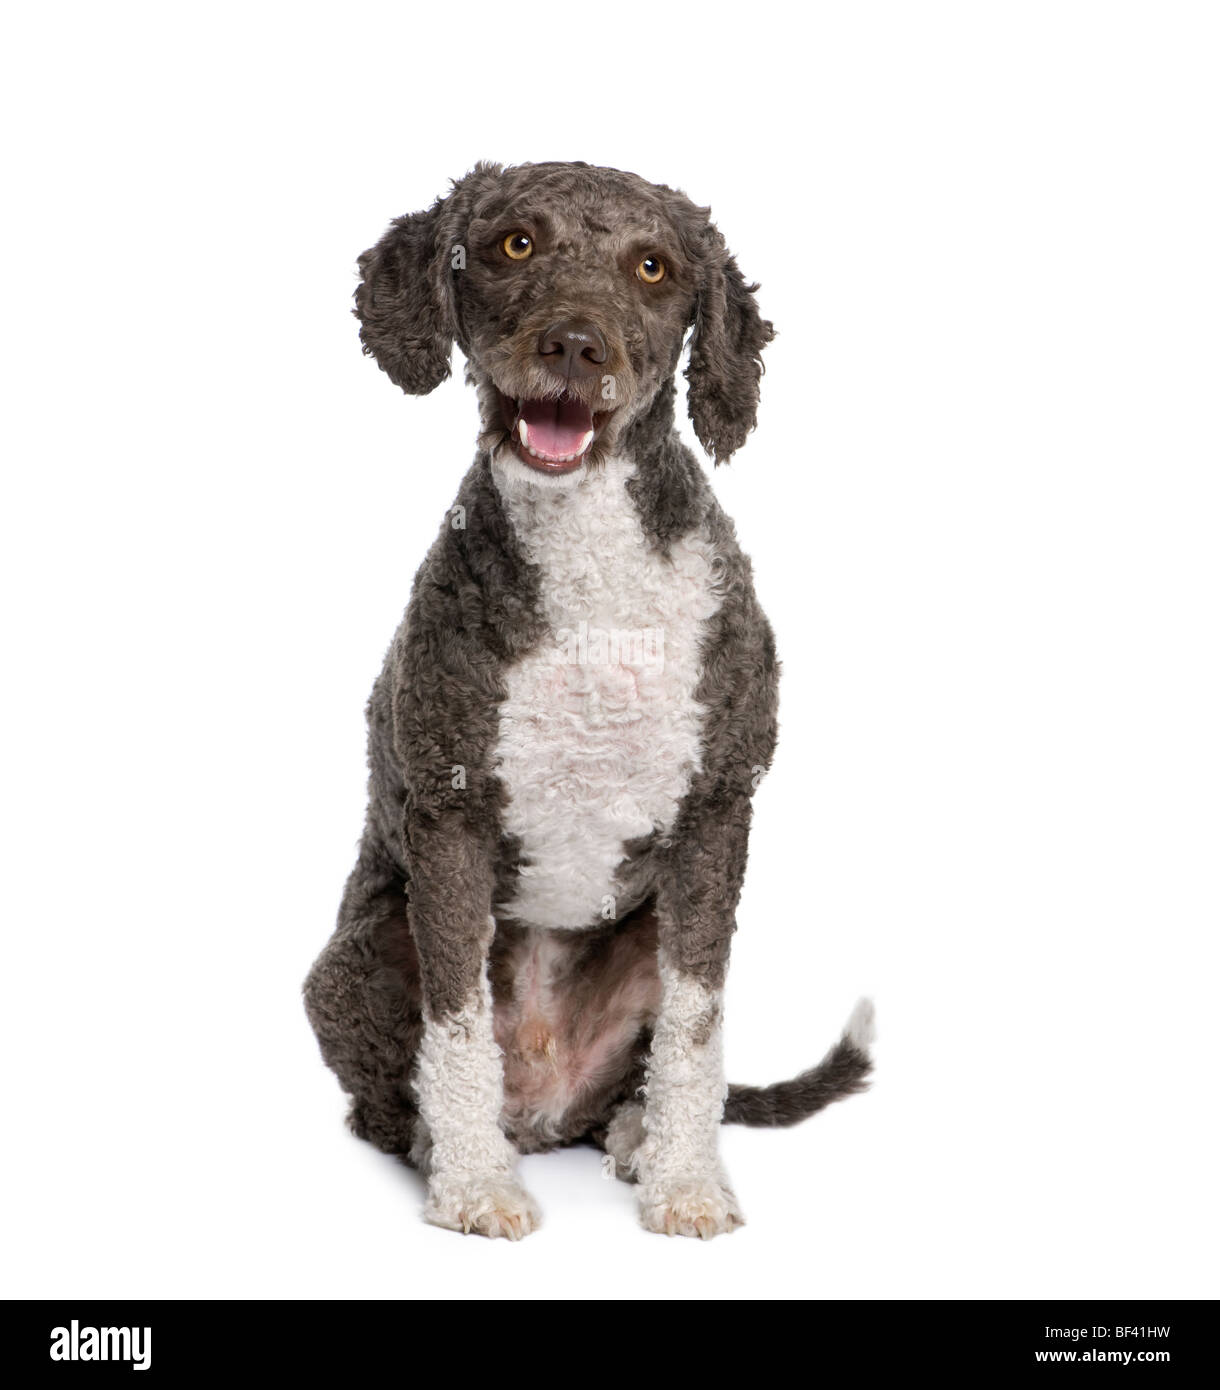 Spanish water spaniel dog, 3 years old, sitting in front of white background, studio shot - Stock Image